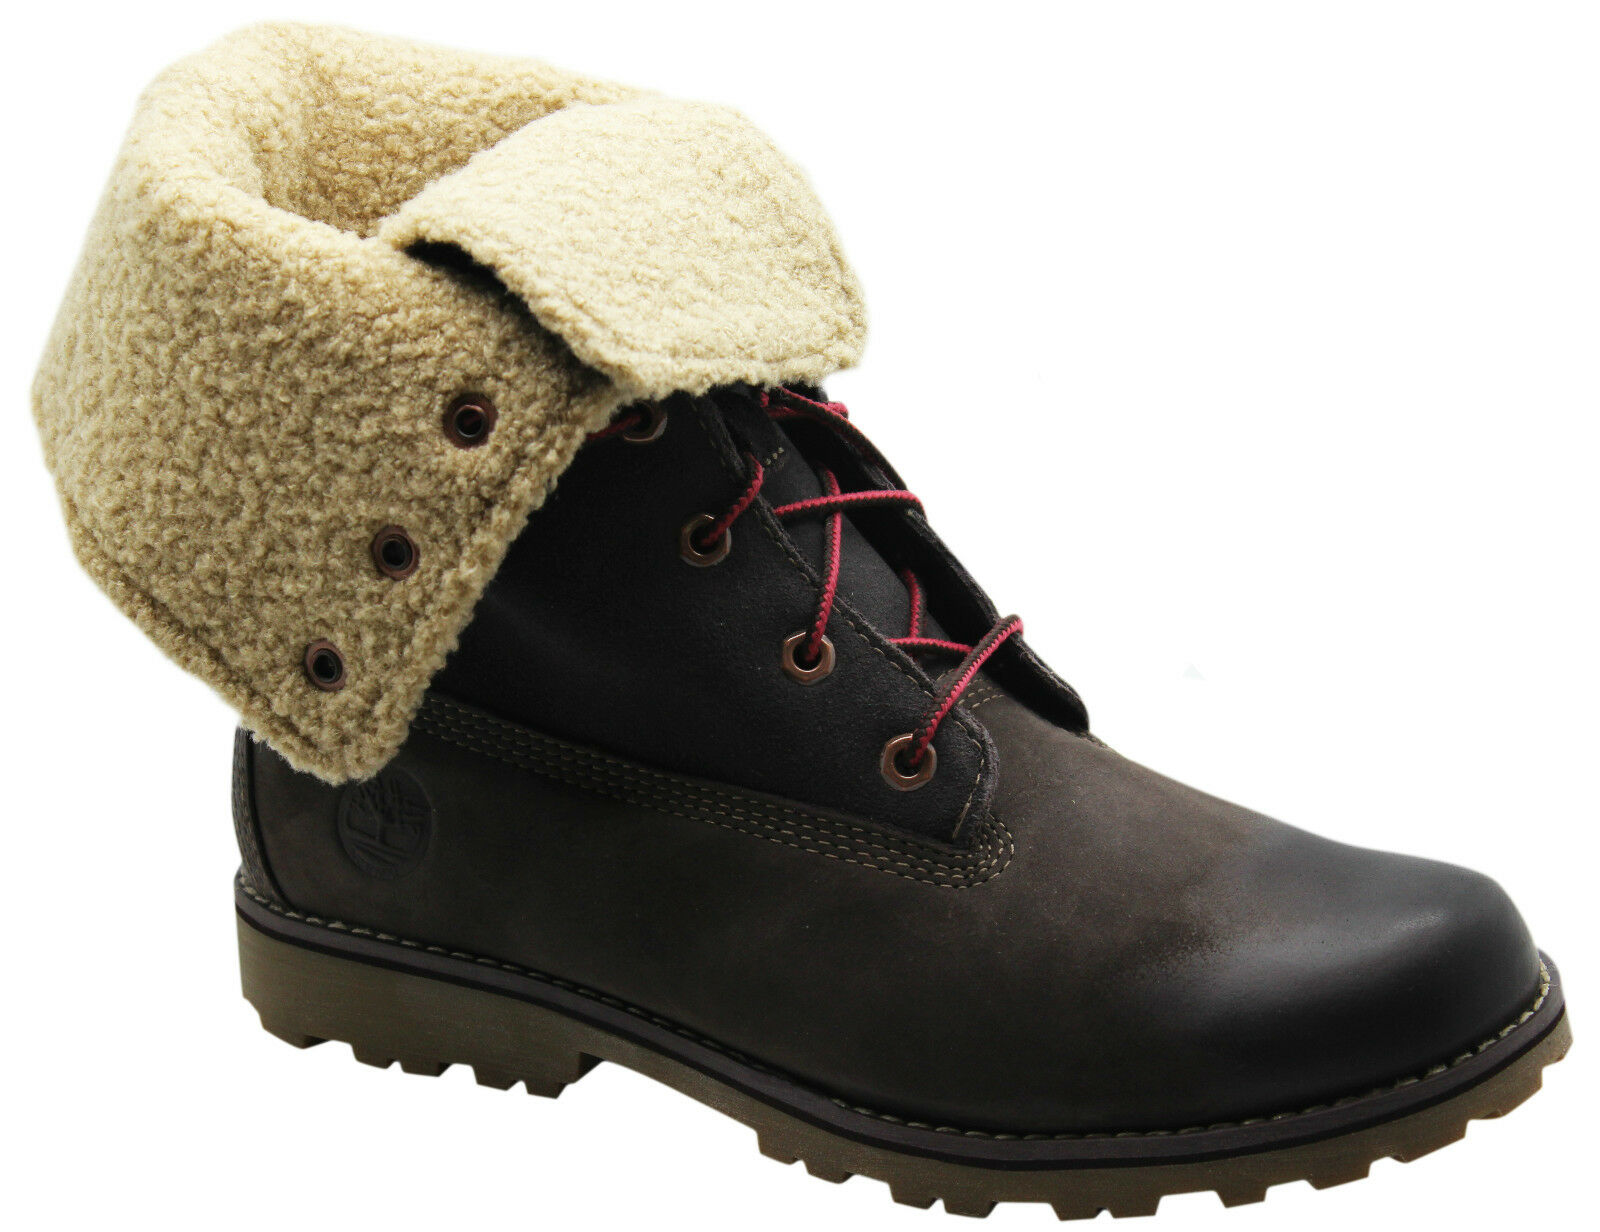 Détails sur TIMBERLAND Authentique 6 IN (environ 15.24 cm) Shearling Juniors Bottes Enfants Roll Down 6298R WH afficher le titre d'origine